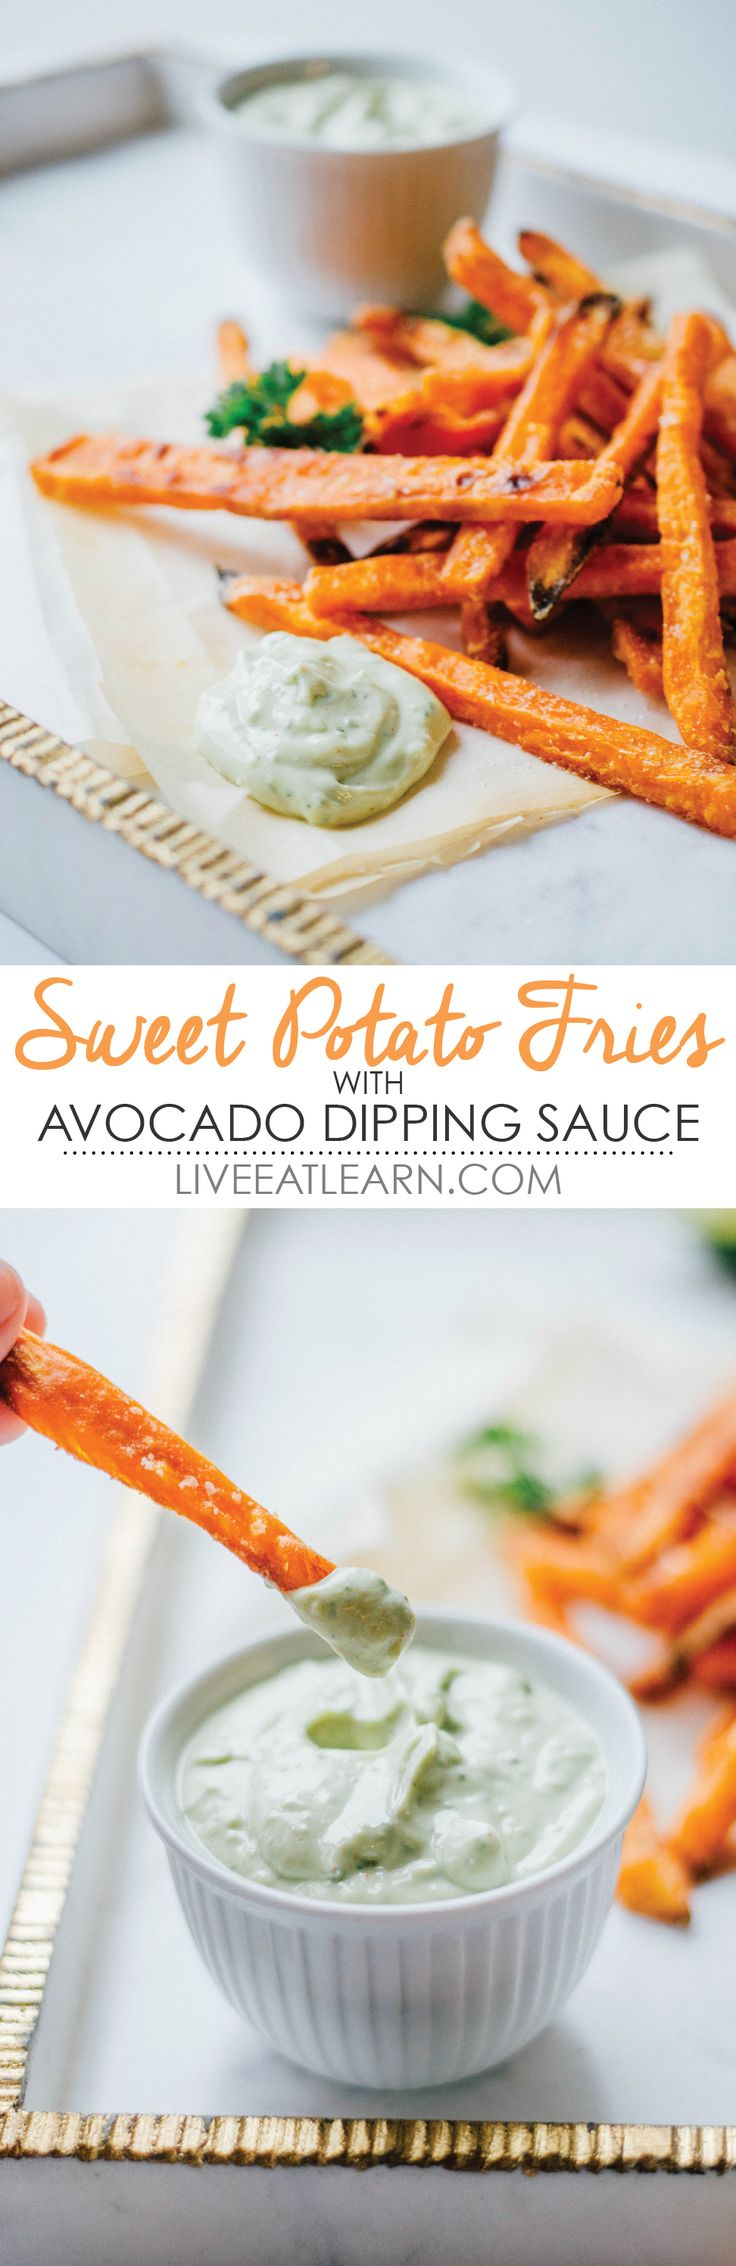 Best 25 junk food ideas on pinterest tumblr food food porn and baked sweet potato fries with avocado dipping sauce forumfinder Images